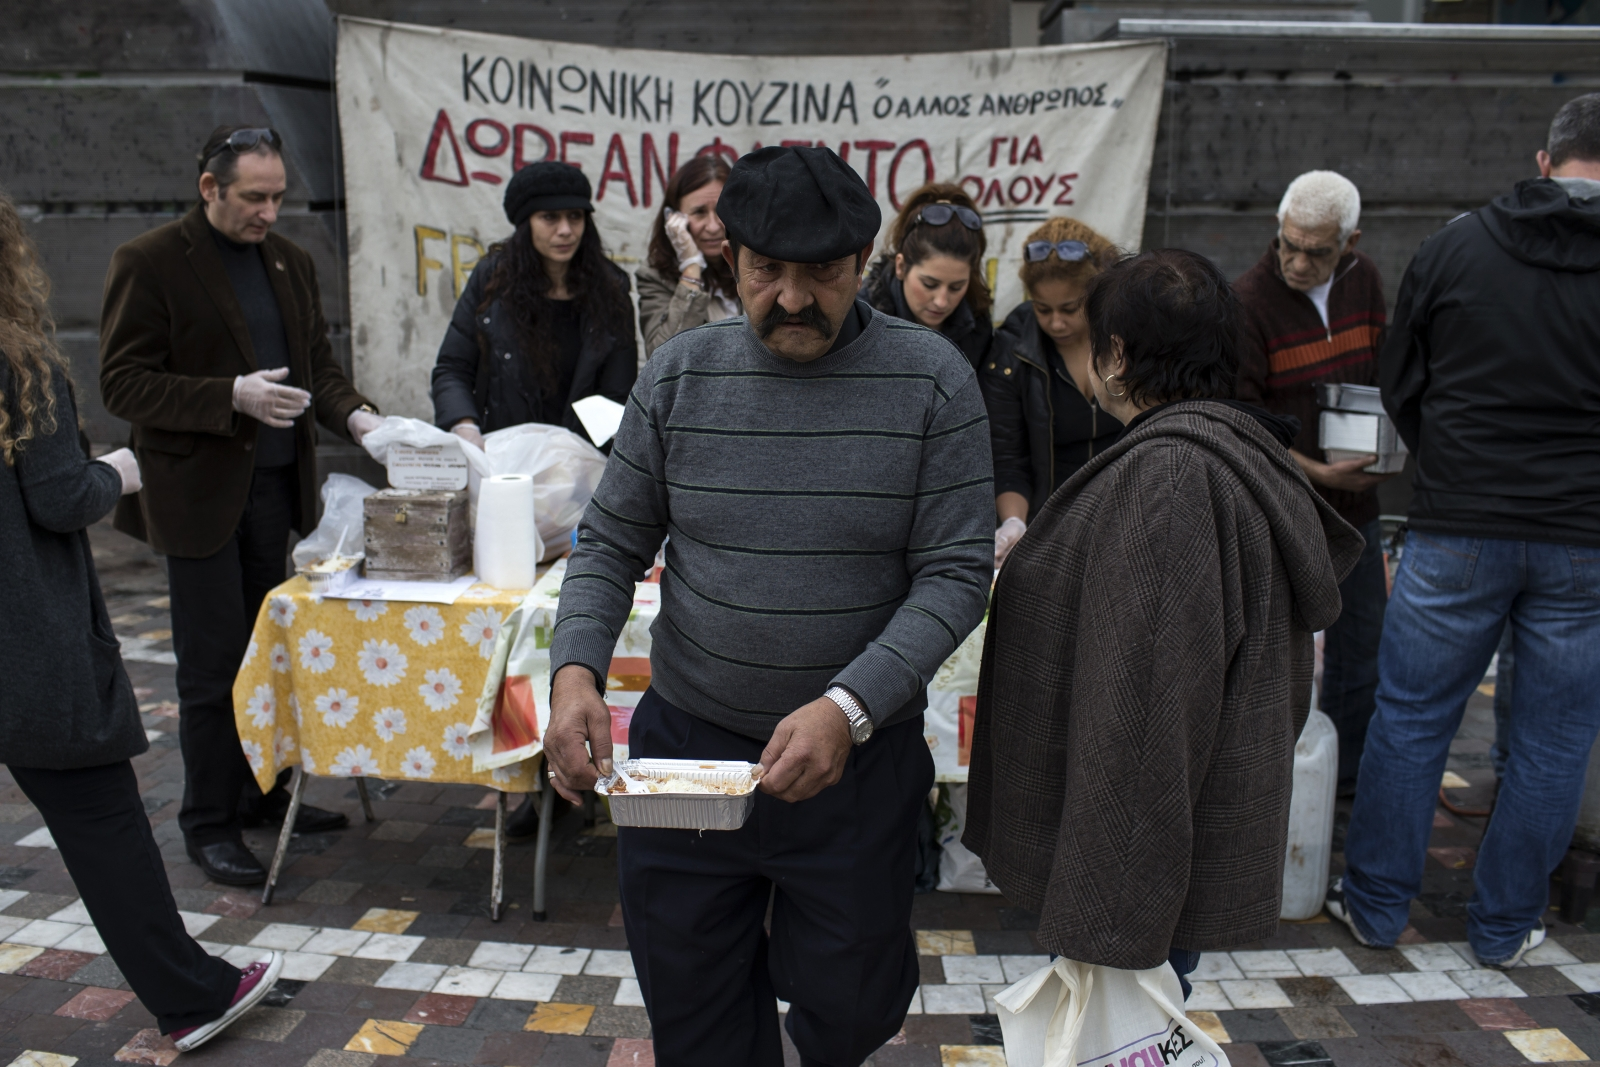 A man receives a portion of food at a soup kitchen, organized during the years of the Greek economic crisis by